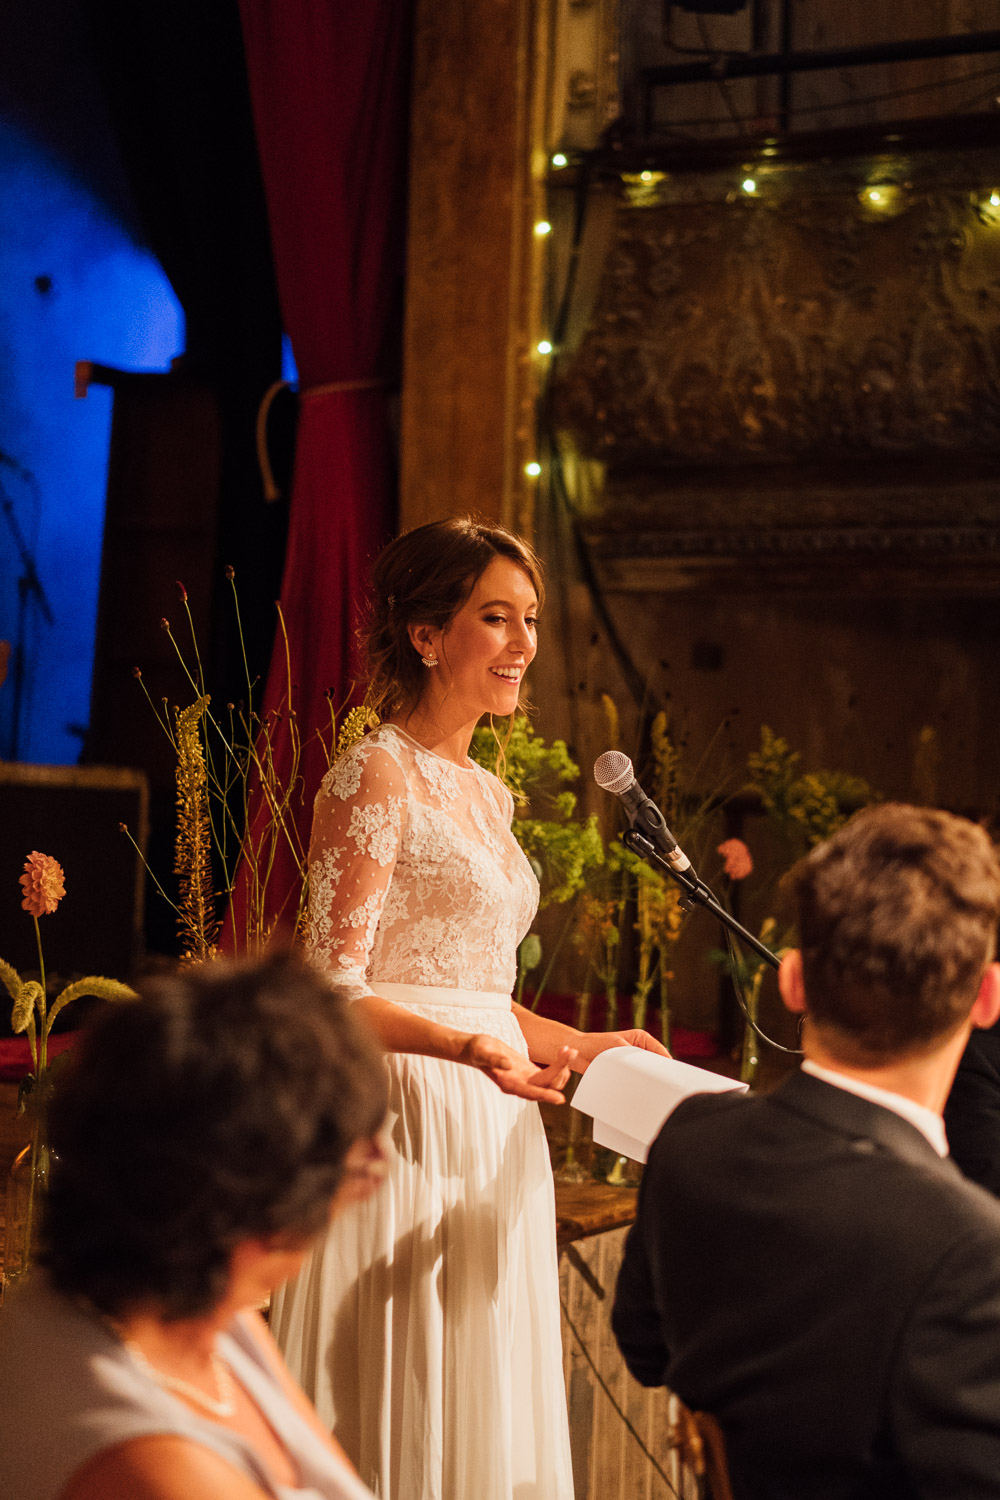 bridal speech in wiltons music hall wedding by london wedding photographer the shannons photography